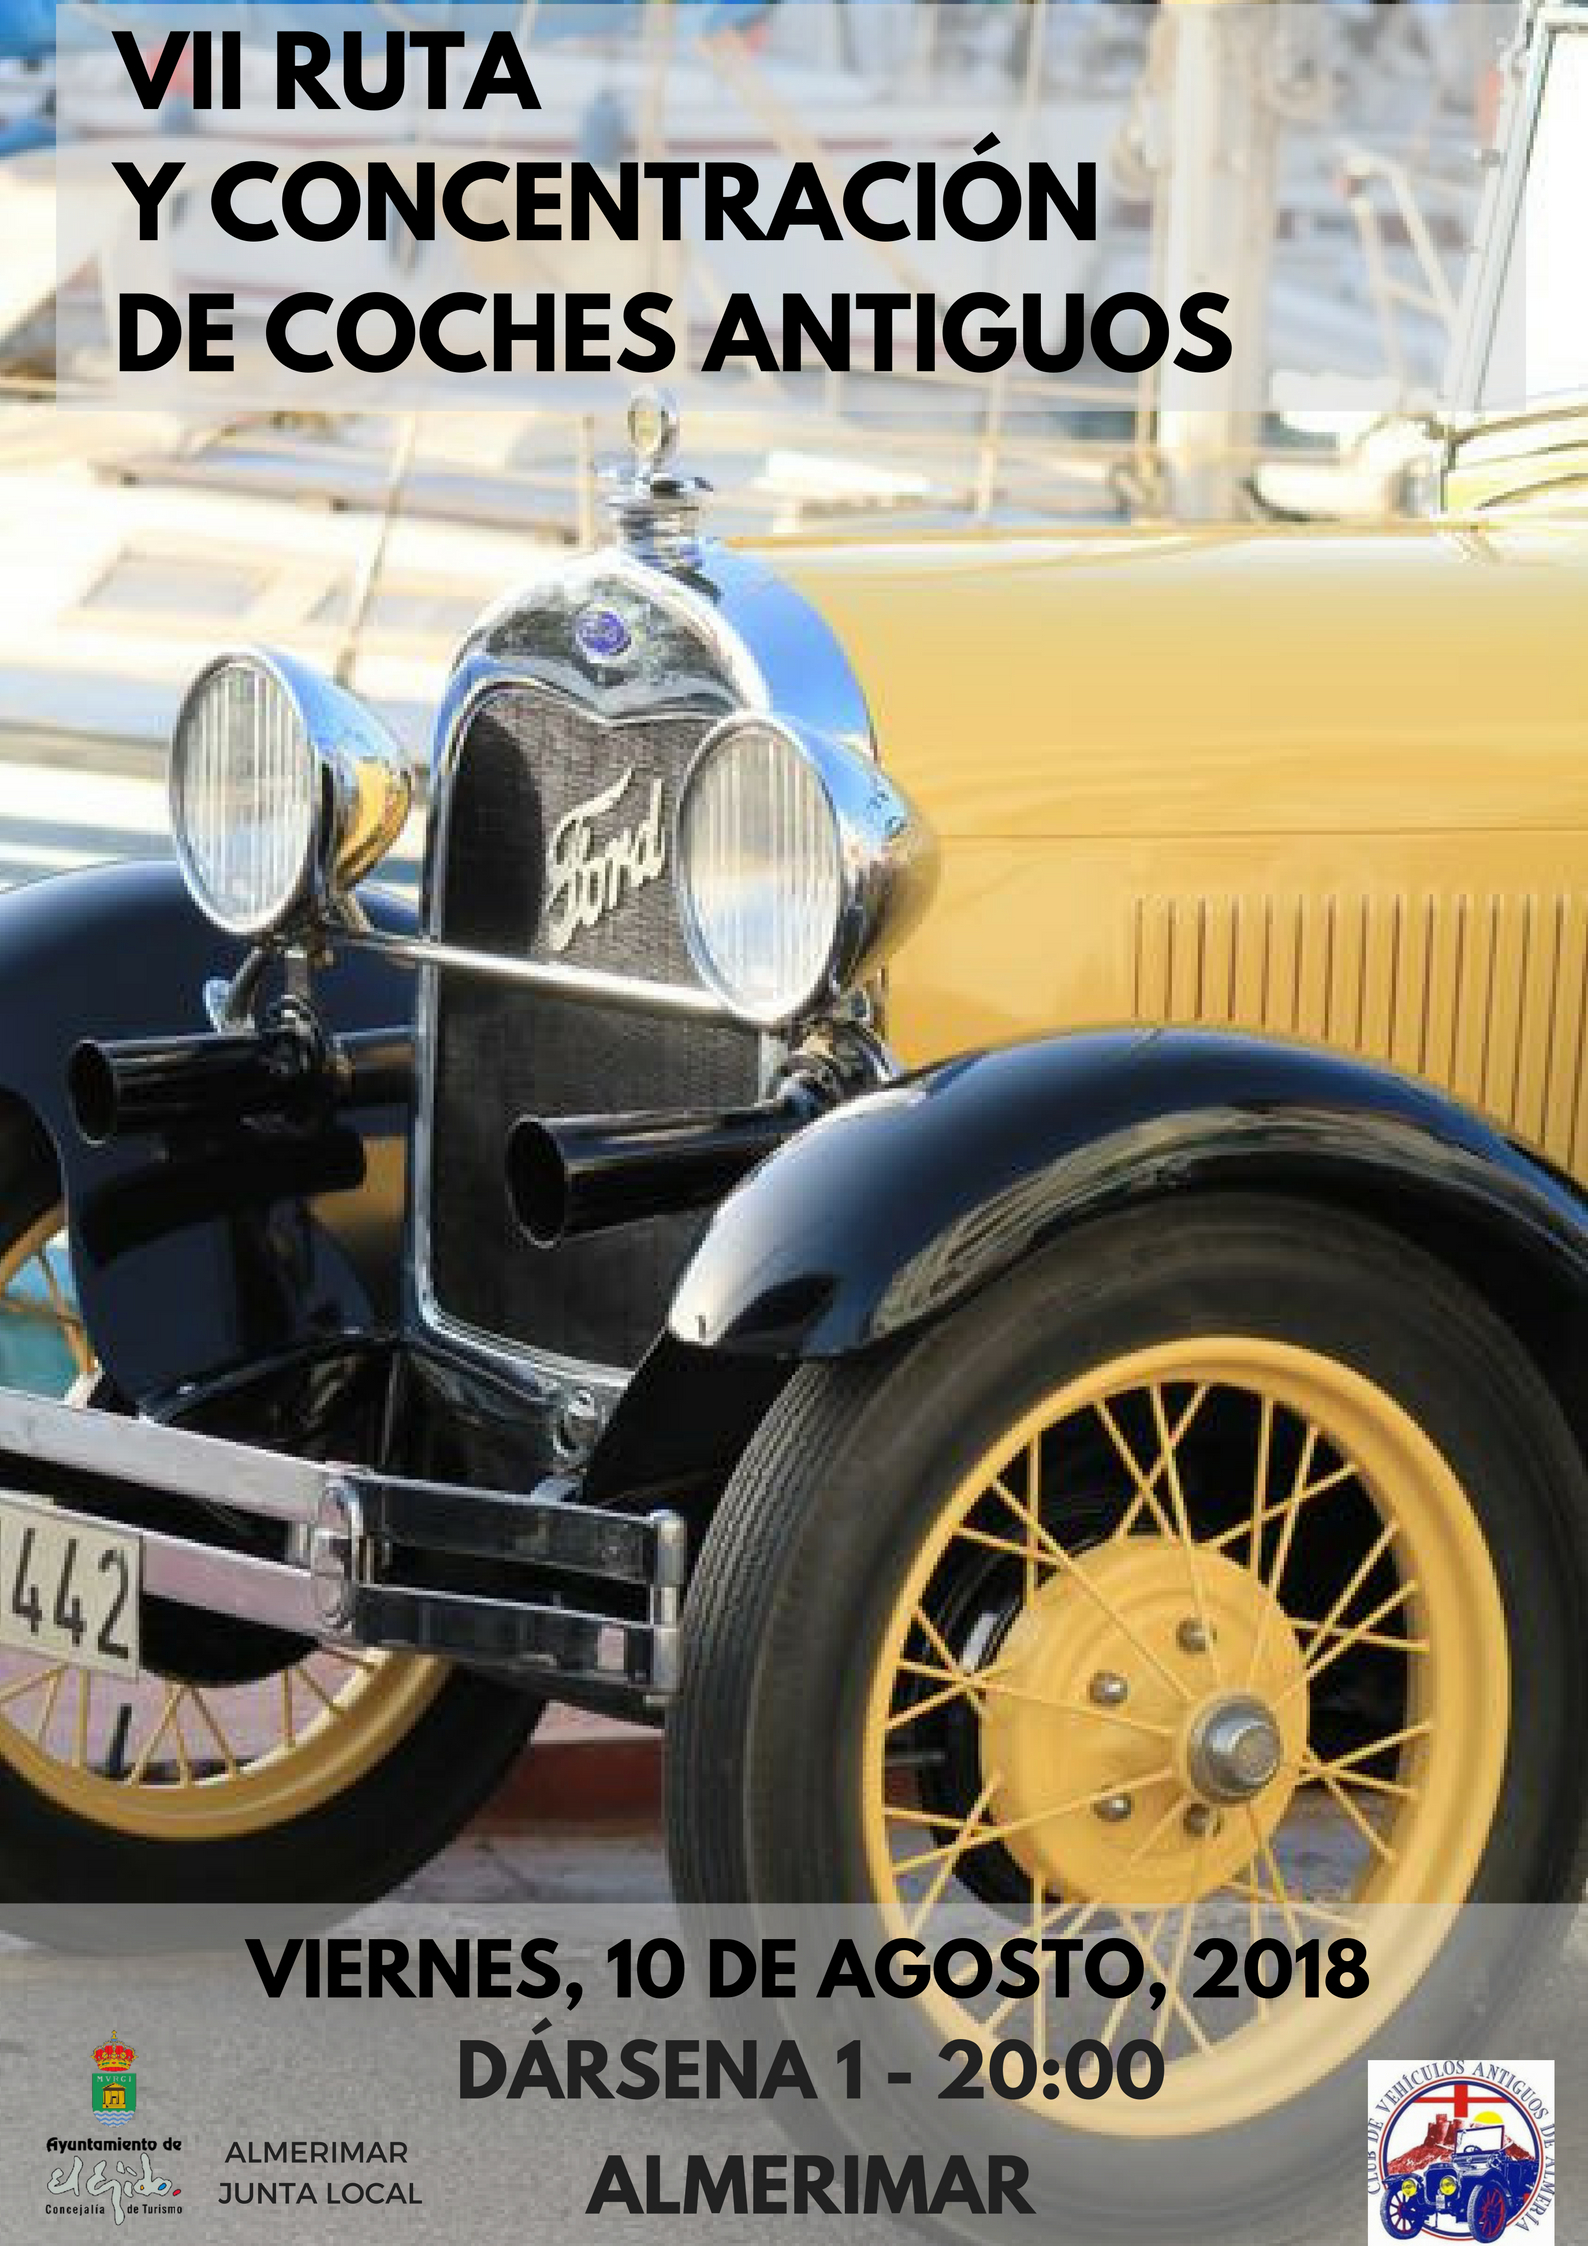 Old cars in Almerimar - 10 August 2018